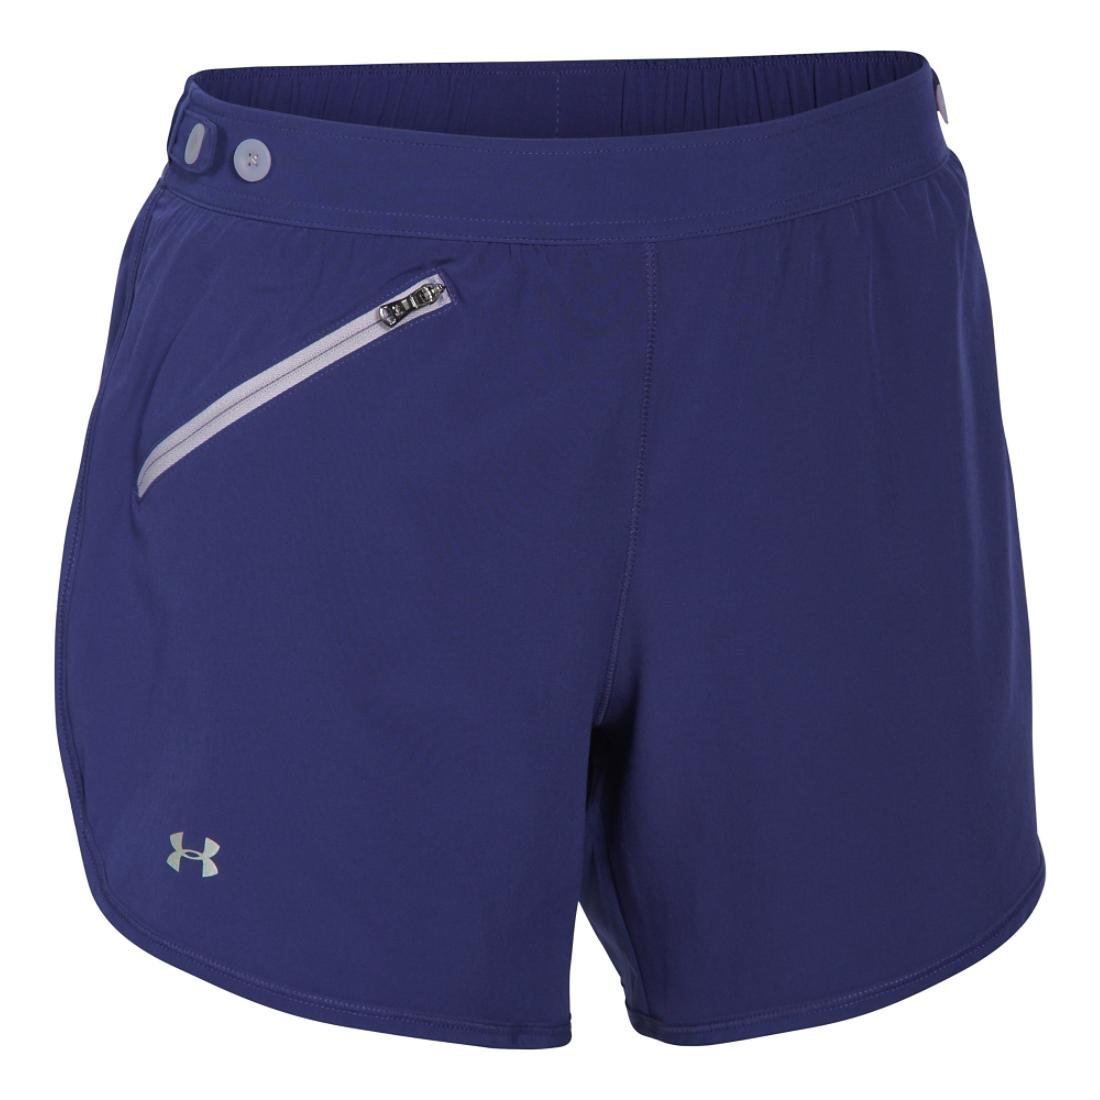 Under Armour Fly Fast 5 Inch Short - Women's